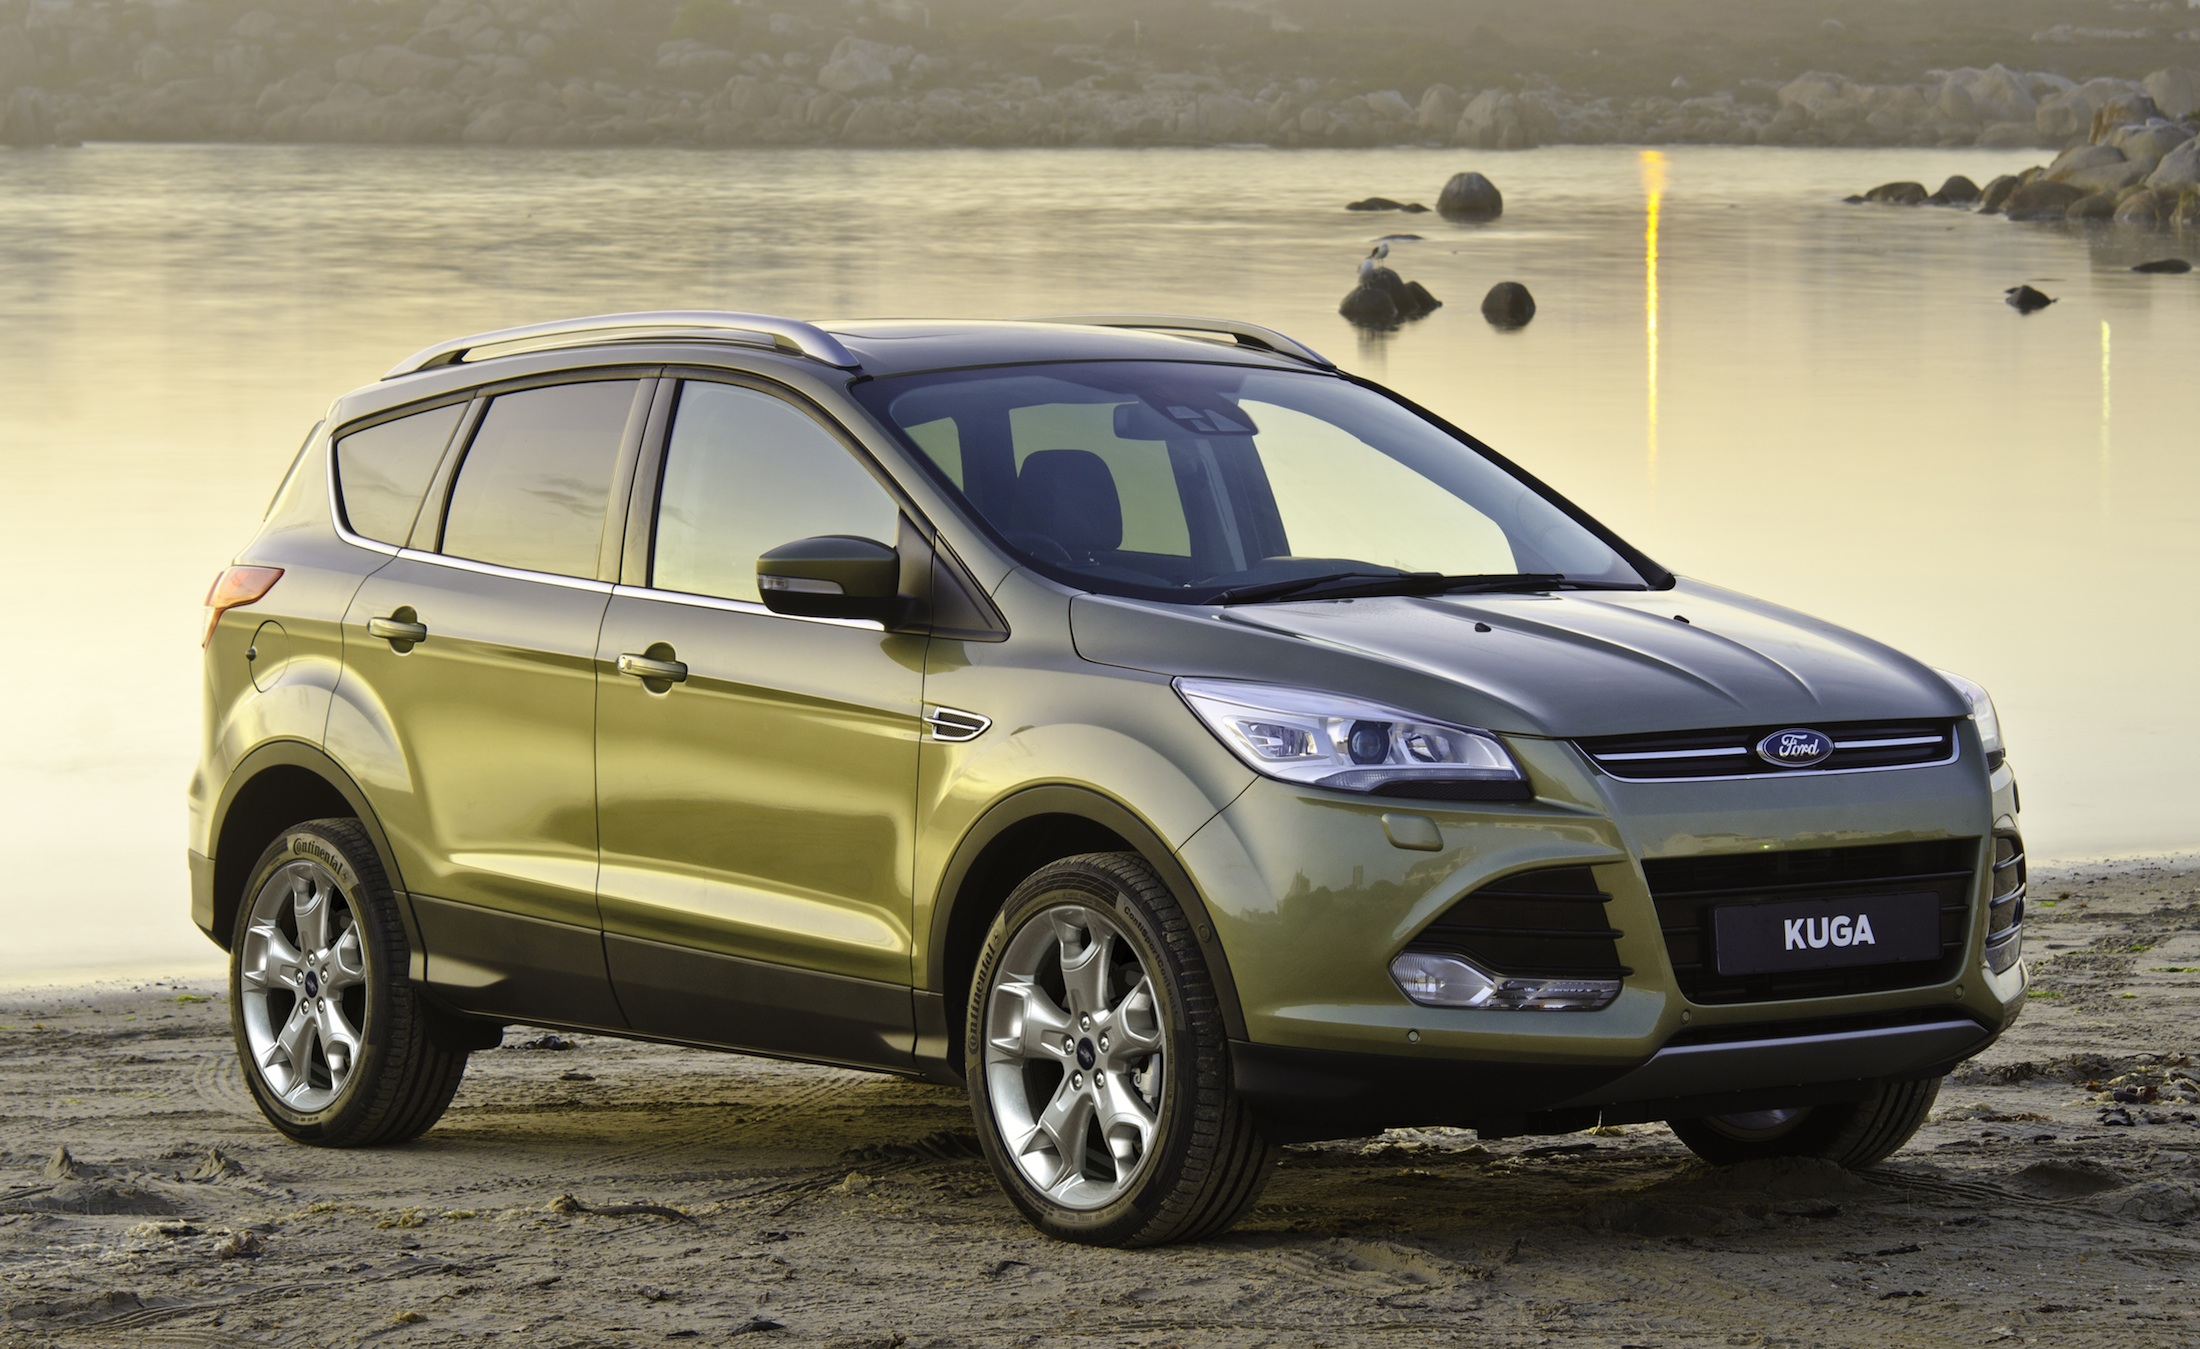 2013 ford kuga pricing and specifications photos 1 of 18. Black Bedroom Furniture Sets. Home Design Ideas